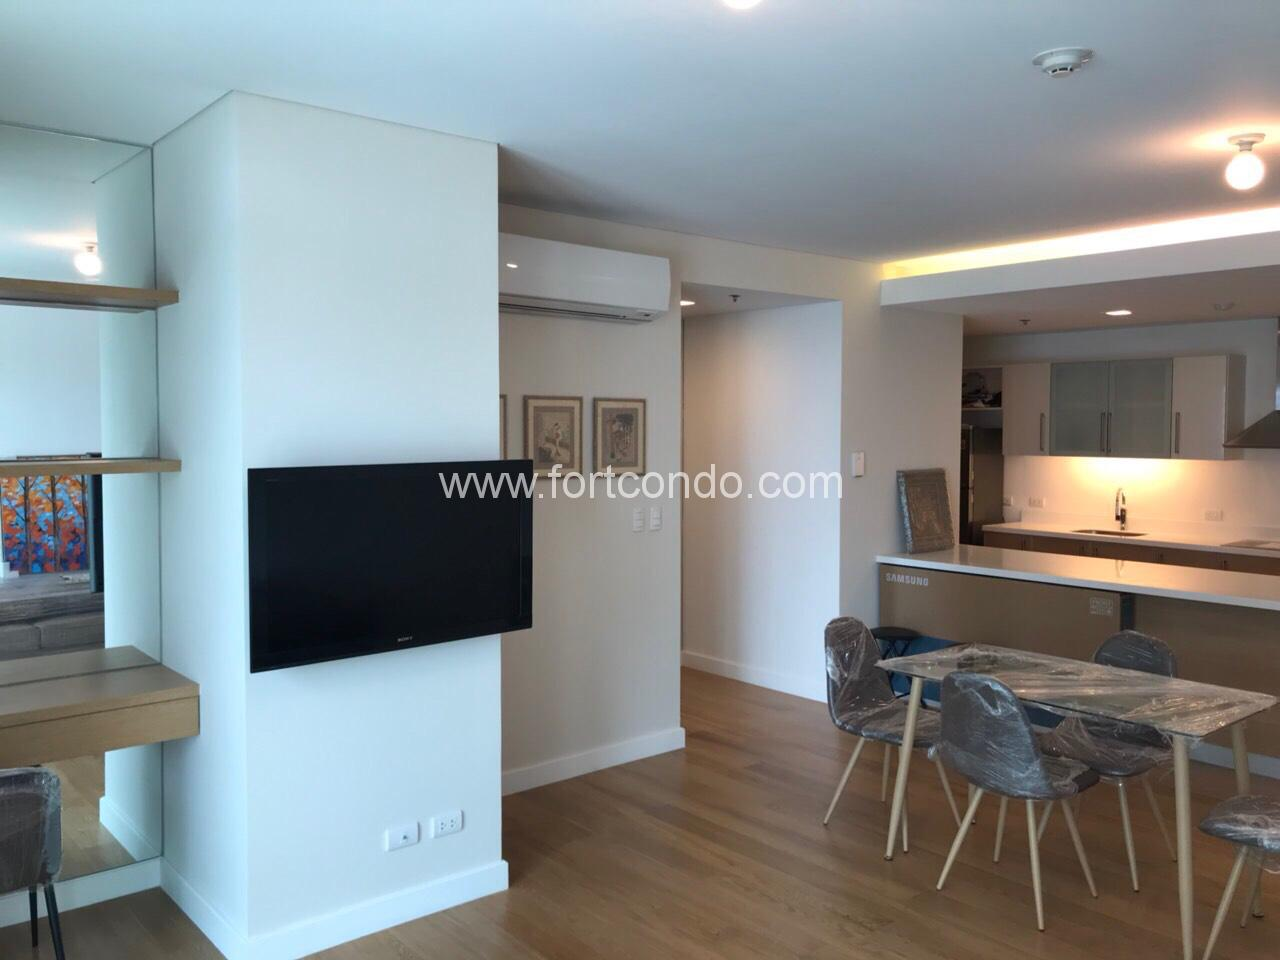 Brand New One Bedroom 1BR Condo With Balcony For Rent In